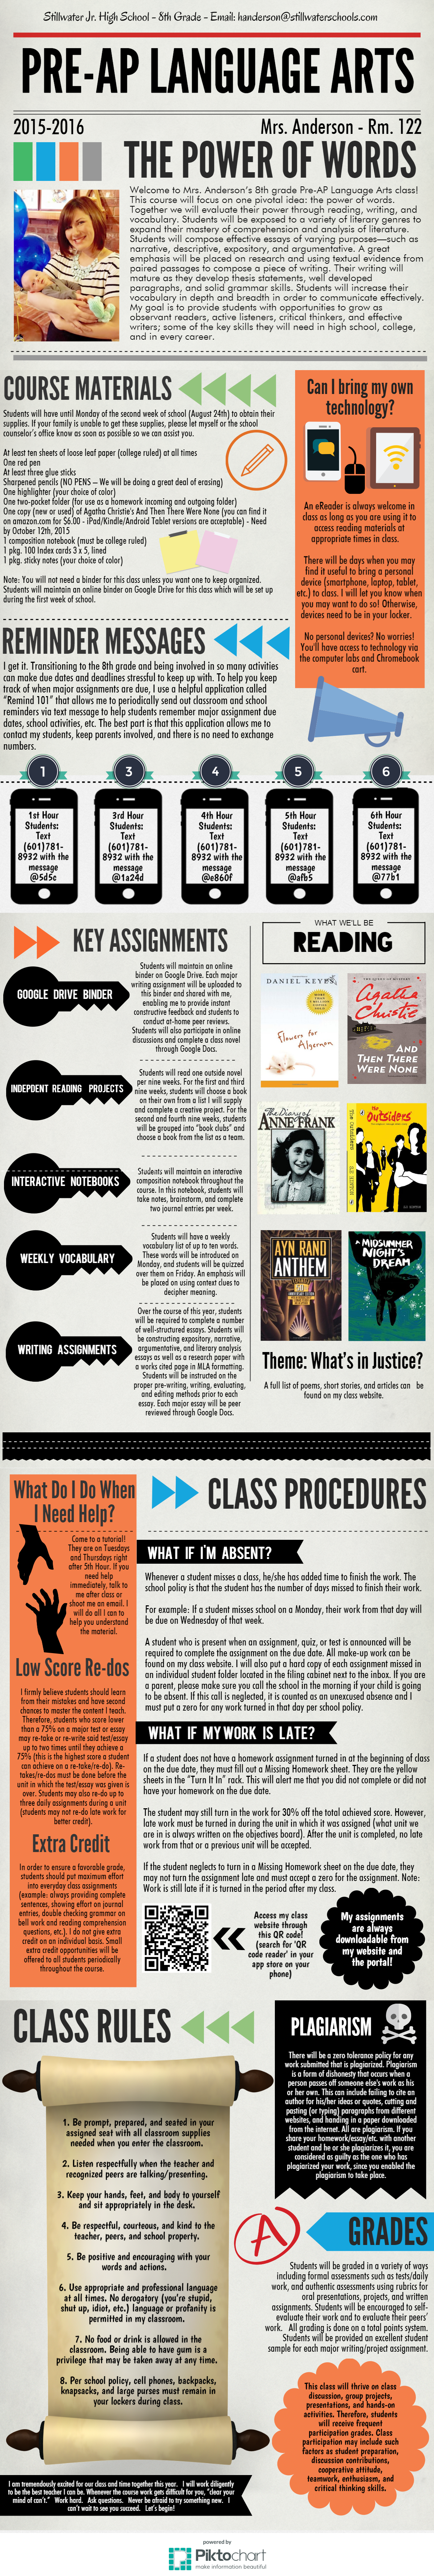 infographic syllabus examples